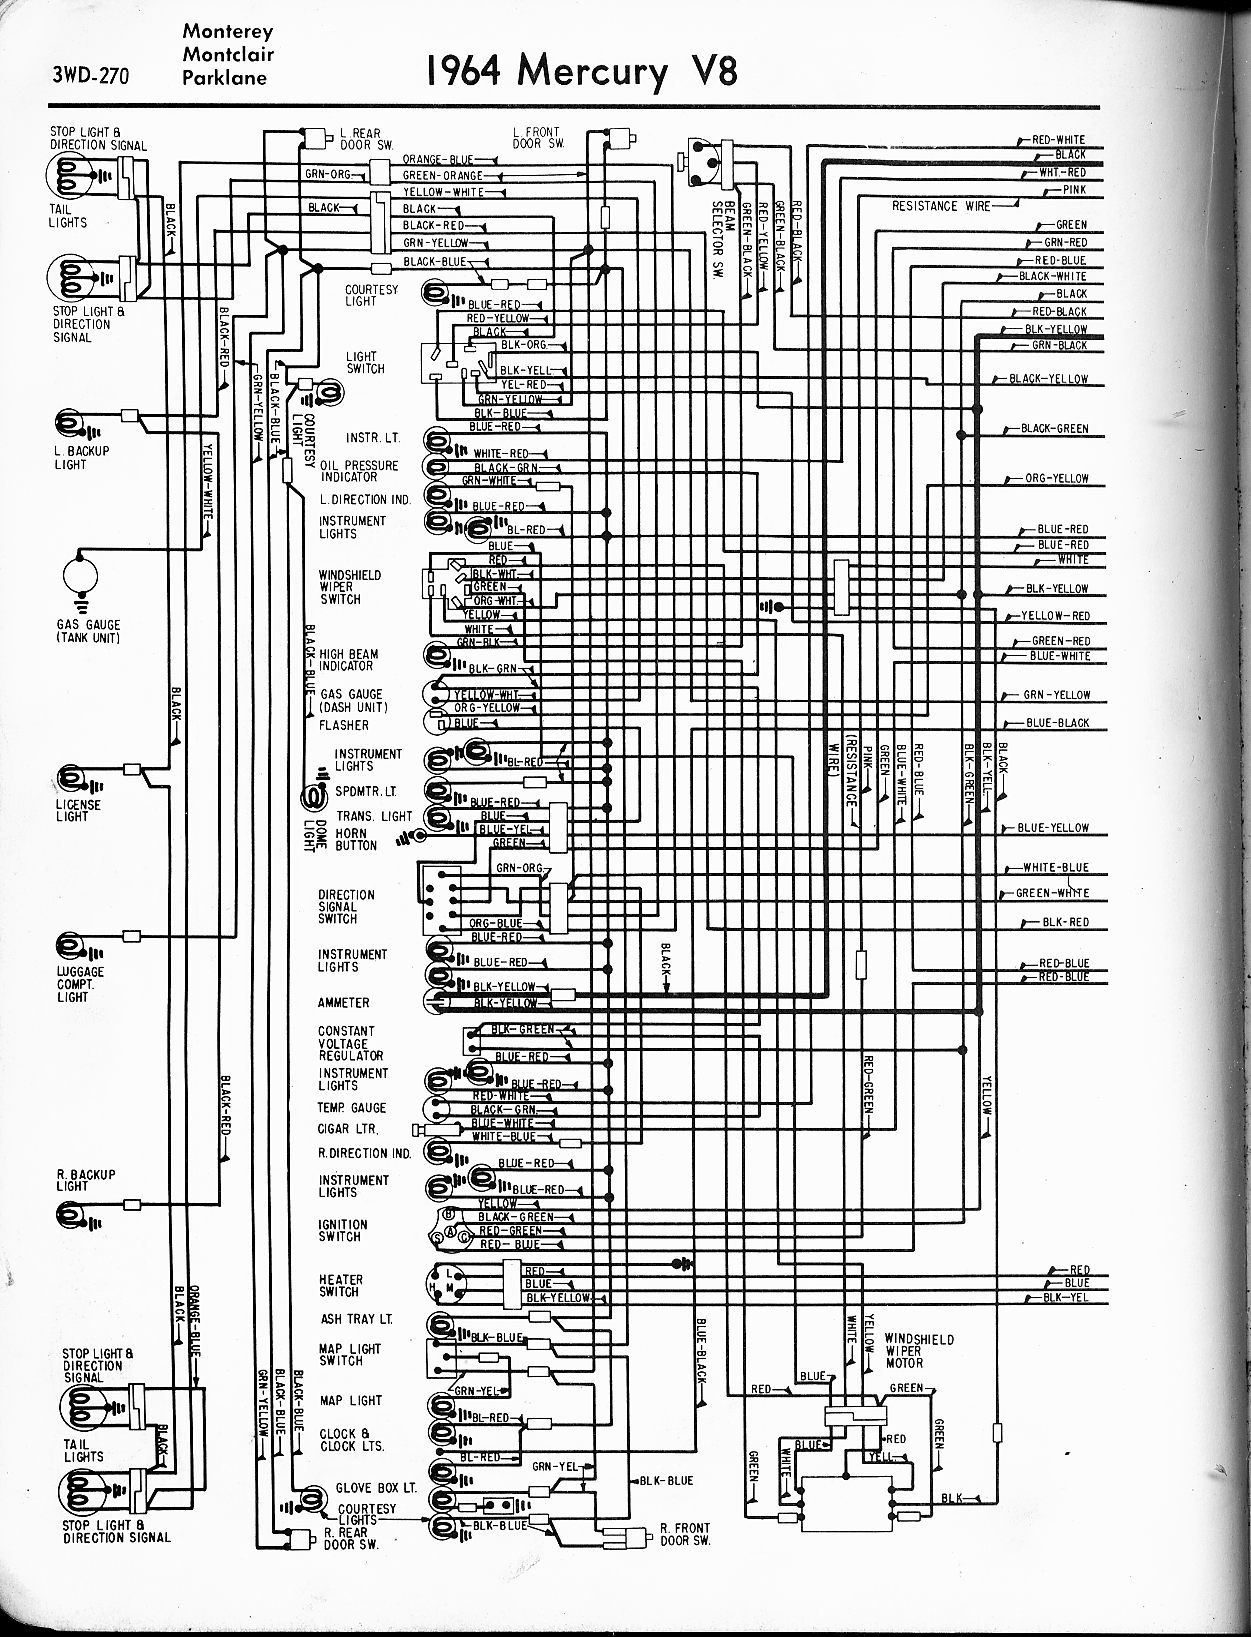 1963 Mercury Et Wiring Diagram Not Lossing Smartcraft Diagrams The Old Car Manual Project Rh Oldcarmanualproject Com Meteor Outboard Motor